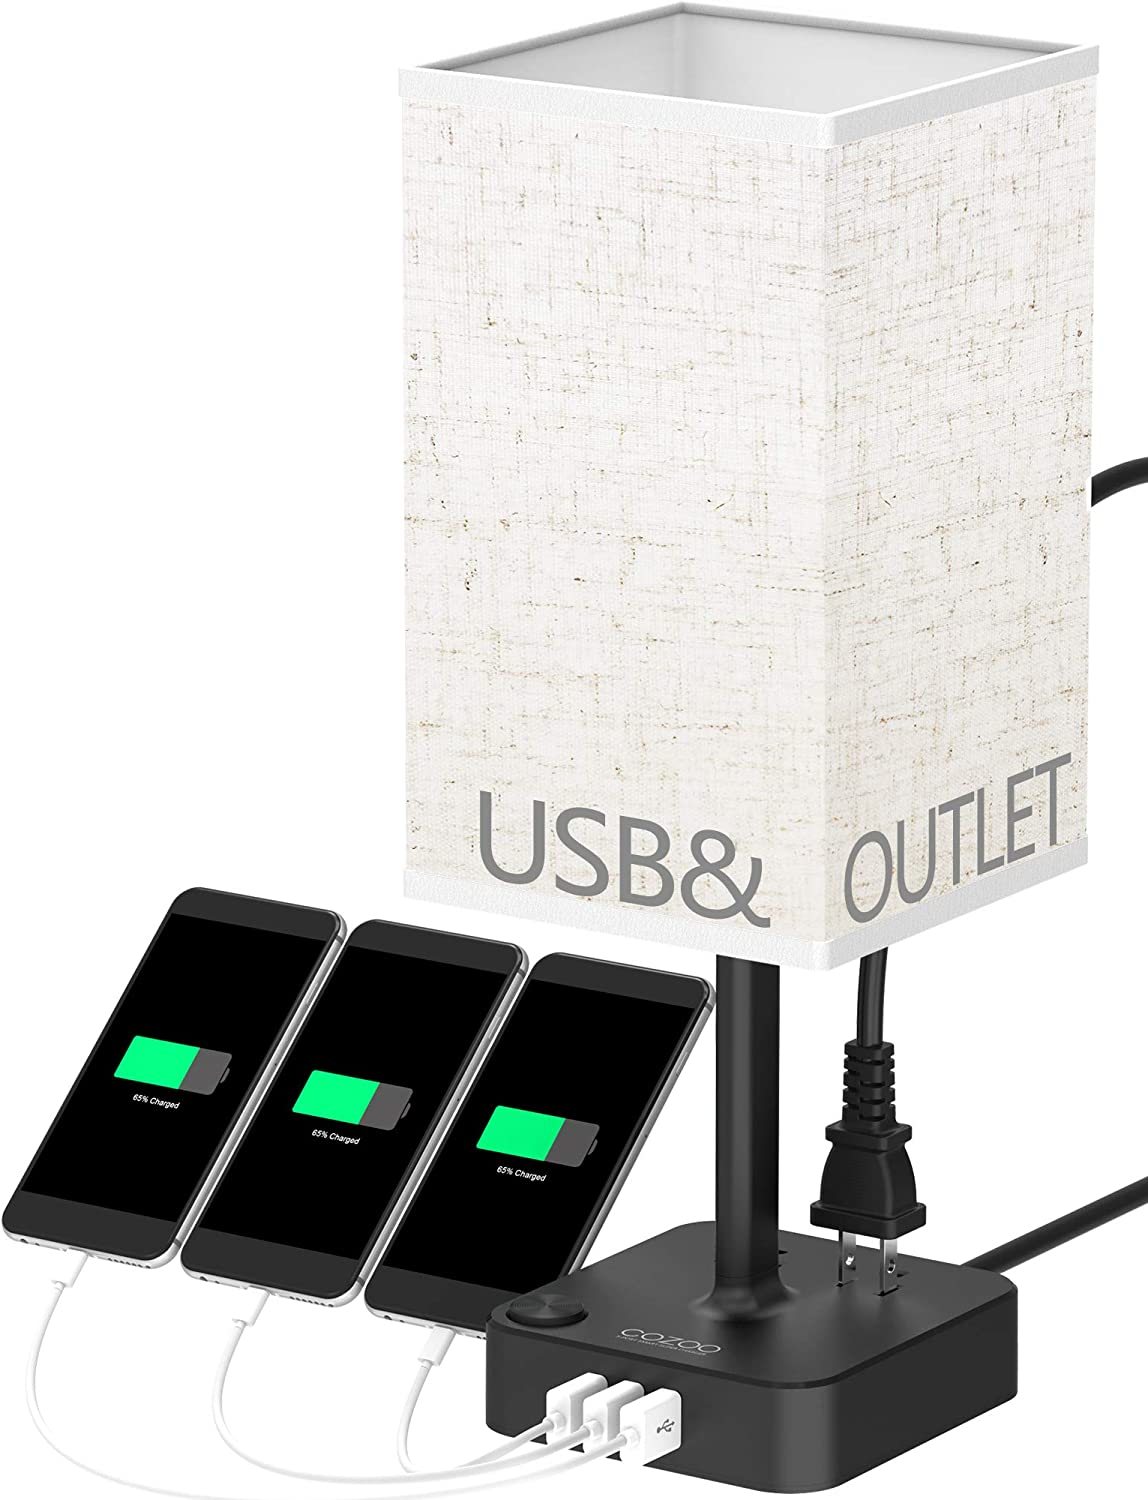 COZOO USB Bedside Table & Desk Lamp with 3 USB Charging Ports and 2 Outlets Power Strip,Square Black Charger Base with Linen Flaxen Fabric Shade, LED Light for Bedroom/Nightstand/Living Room